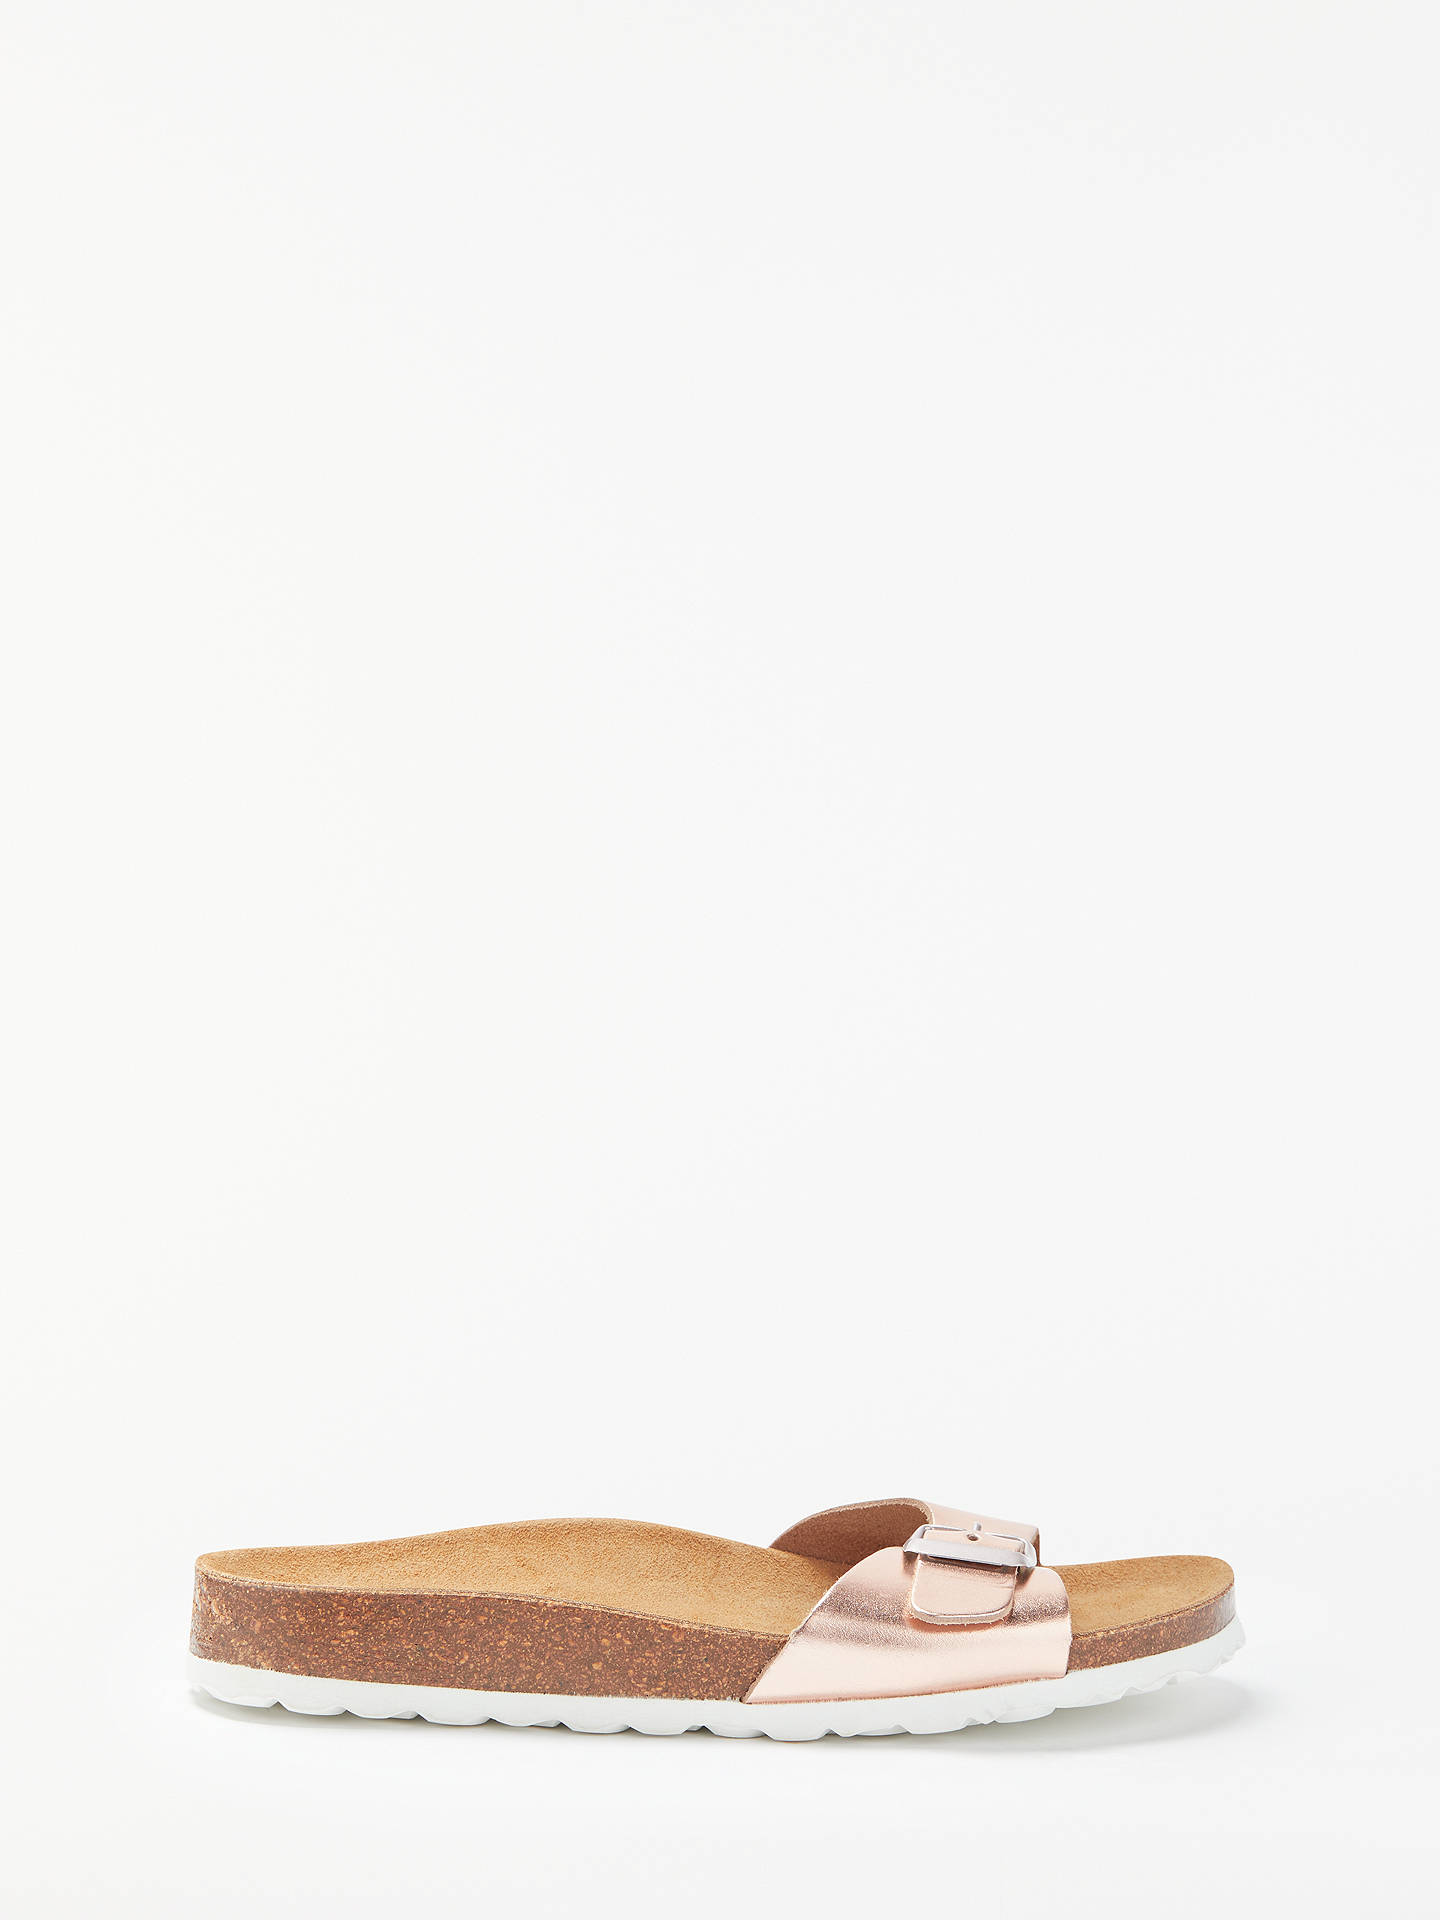 John Lewis Partners Livia Buckle Slider Sandals Rose Gold Tendencies Footbed 2 Strap Brown 41 Buyjohn Leather 3 Online At